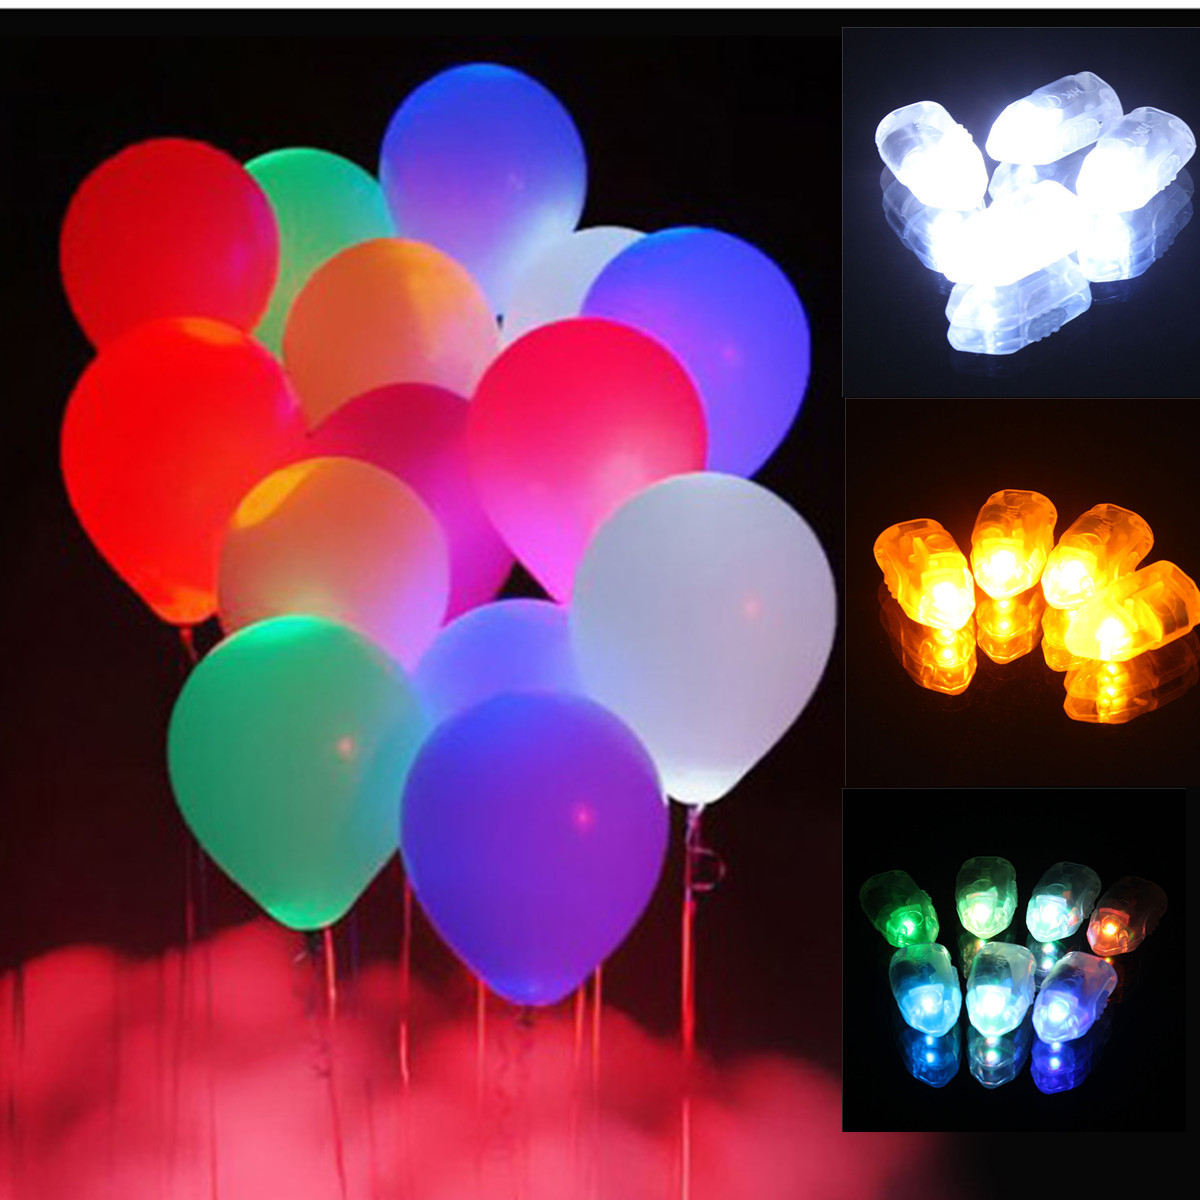 10Pcs LED Balloon Lights Lamps Paper Lanterns Lamp Home Wedding Party Decorative Lights new modern led wall lamps ac96 265v 12w 15w led bedside lamps for home high power led wall lamp for bedroom lighting lights